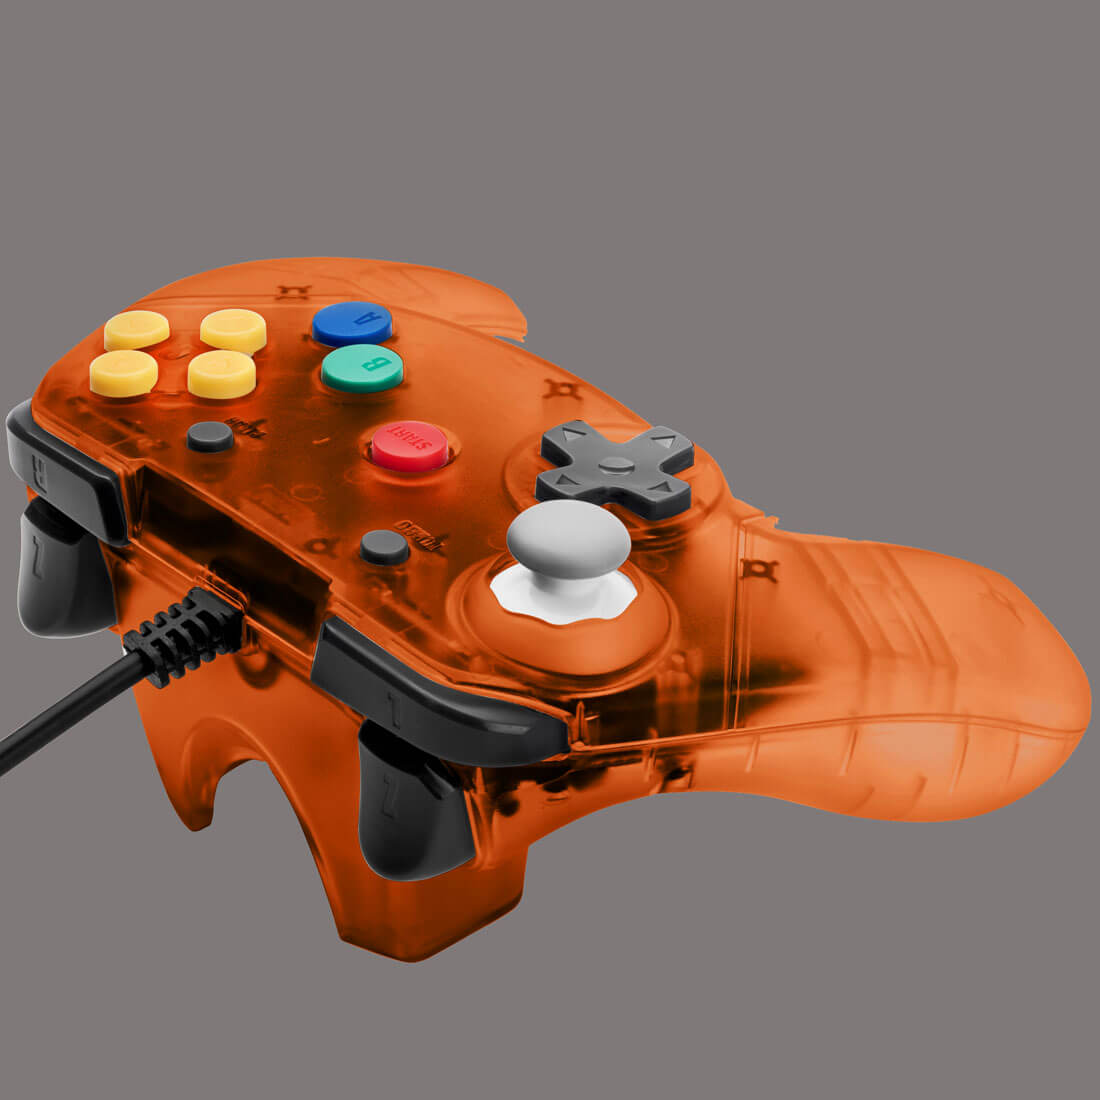 brawler64tc-persp-top-right-orange-1100x1100.jpg